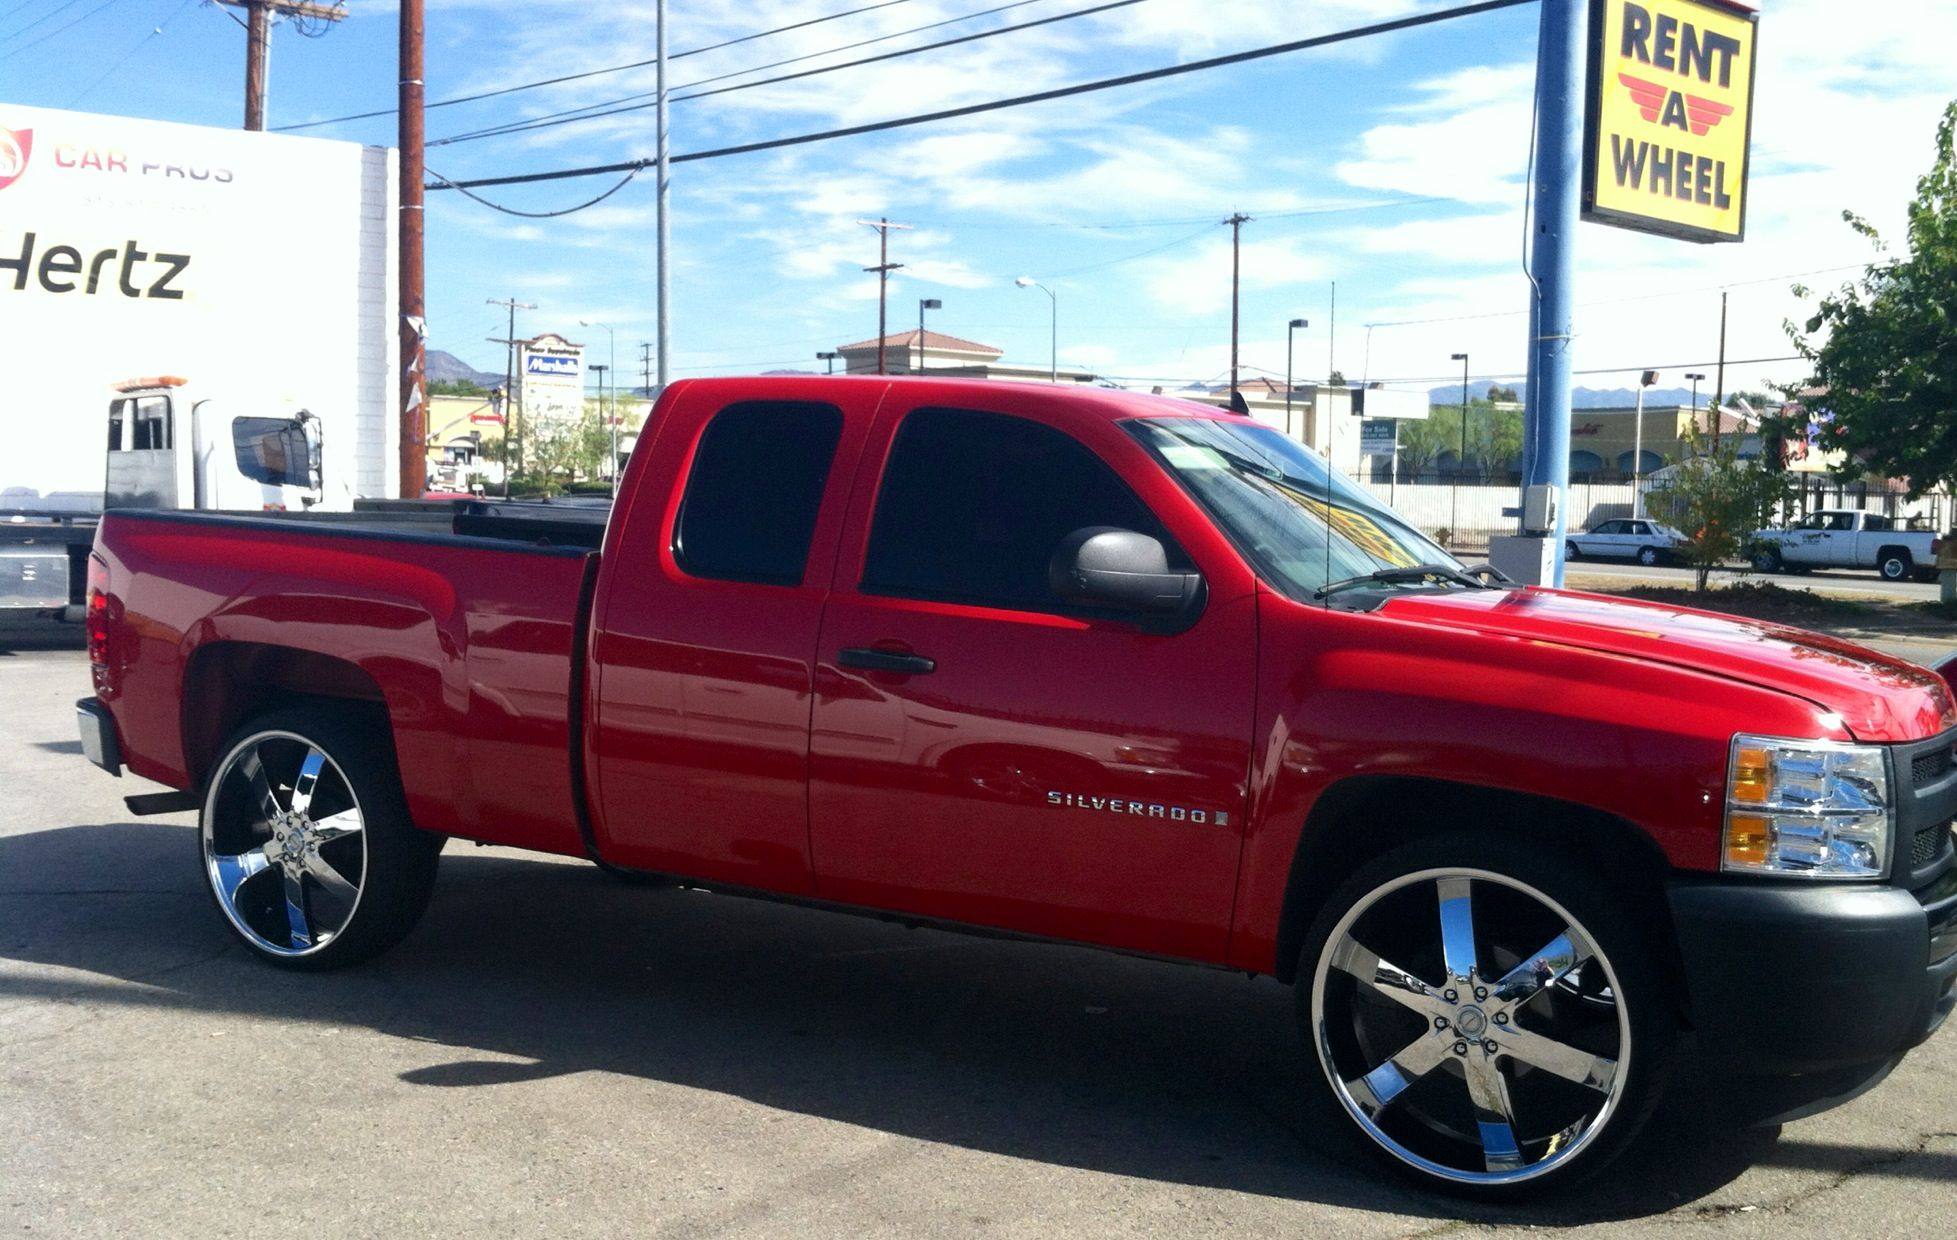 Silverado Rolls Out On 26 S Silverado Trucks Vehicles